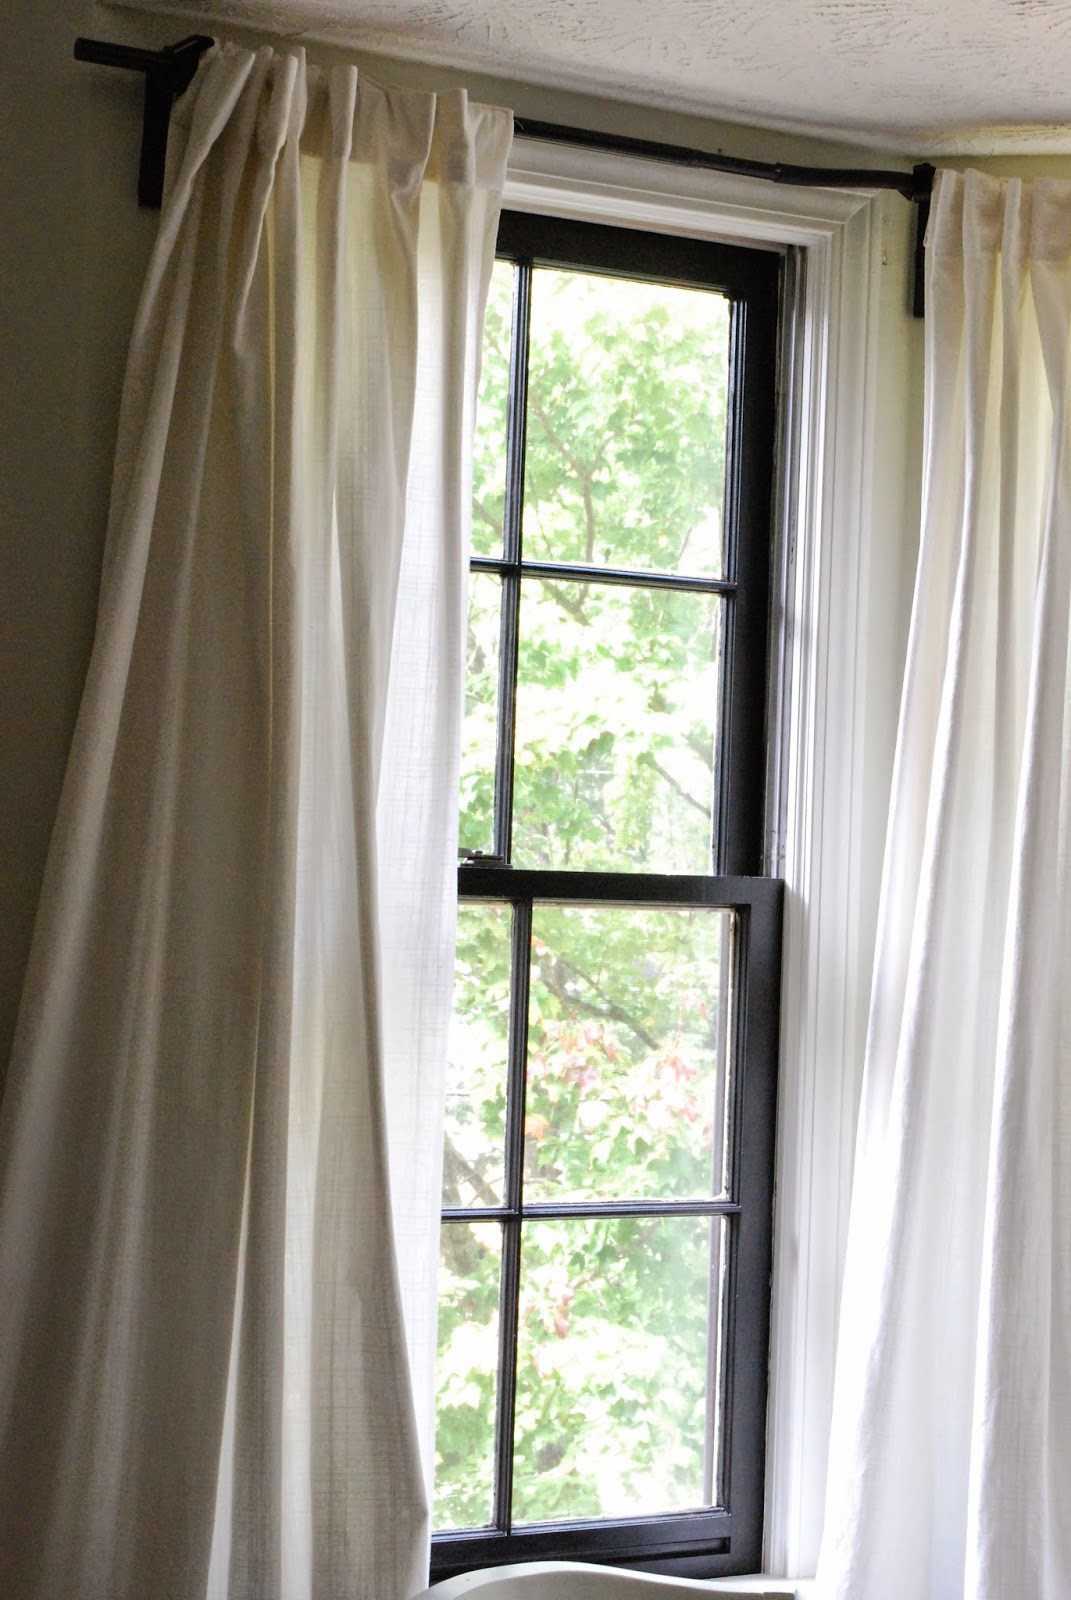 your curtains for window brilliant rail kitchen home curtain decor rods bay flexible rod house inspiration throughout